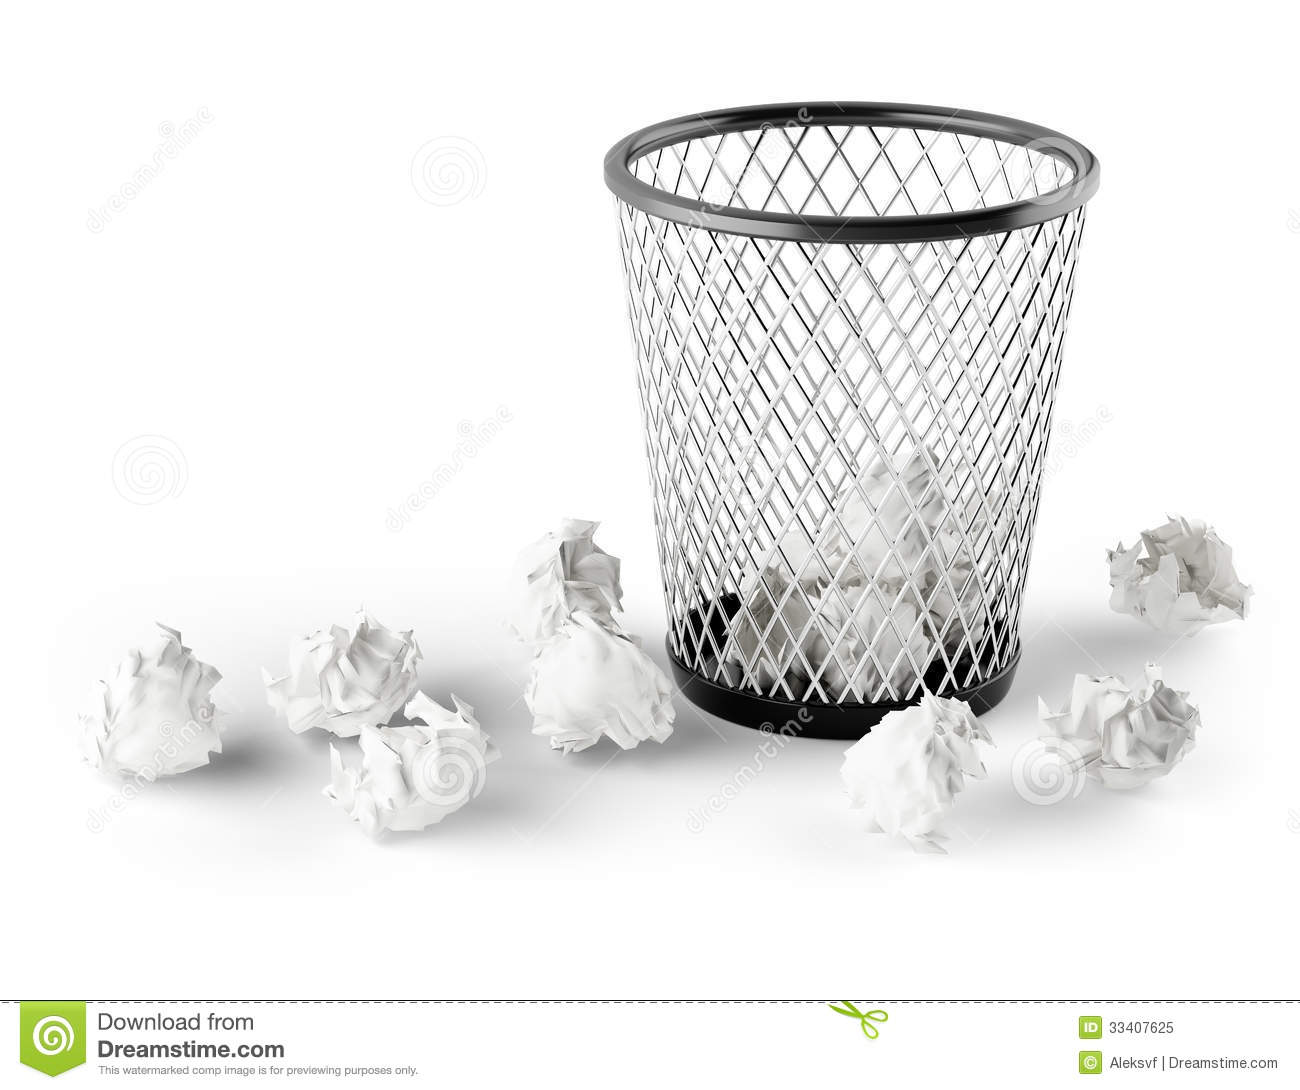 Wastepaper Basket Cool Wastepaper Basket Royalty Free Stock Photo  Image 33407625 Review